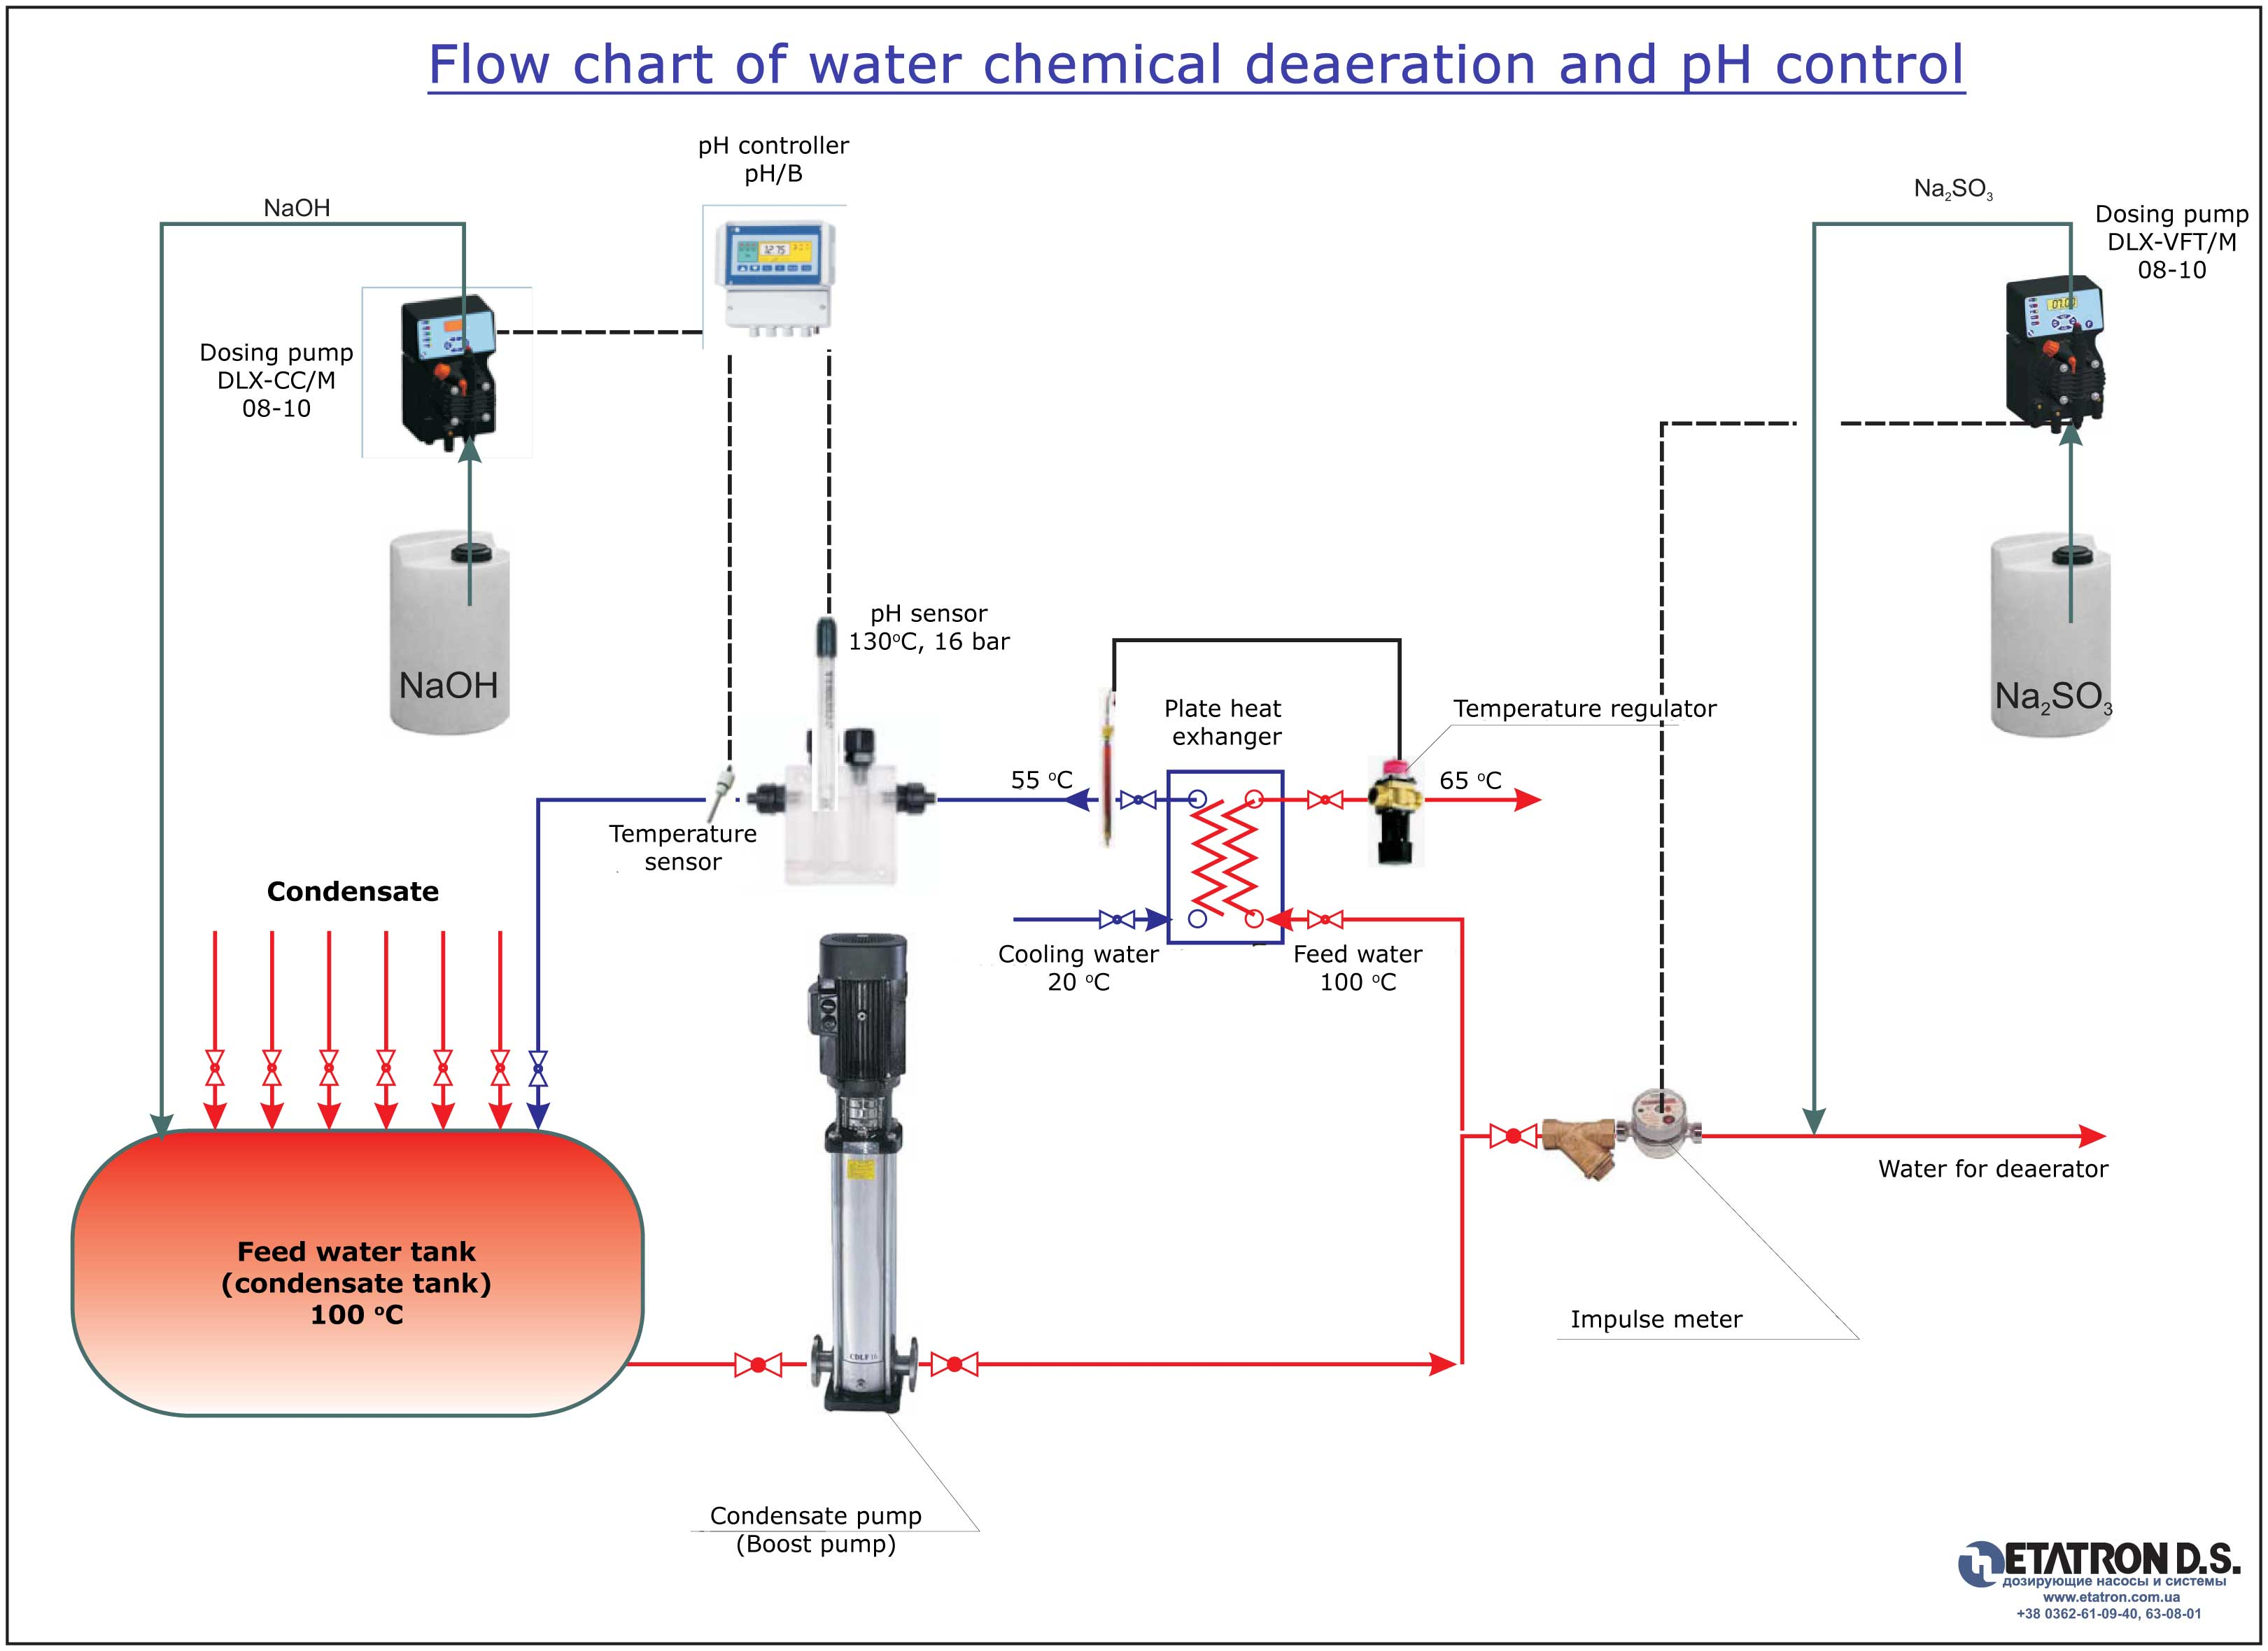 Dissolved Oxygen Color Chart Flow chart of water chemical